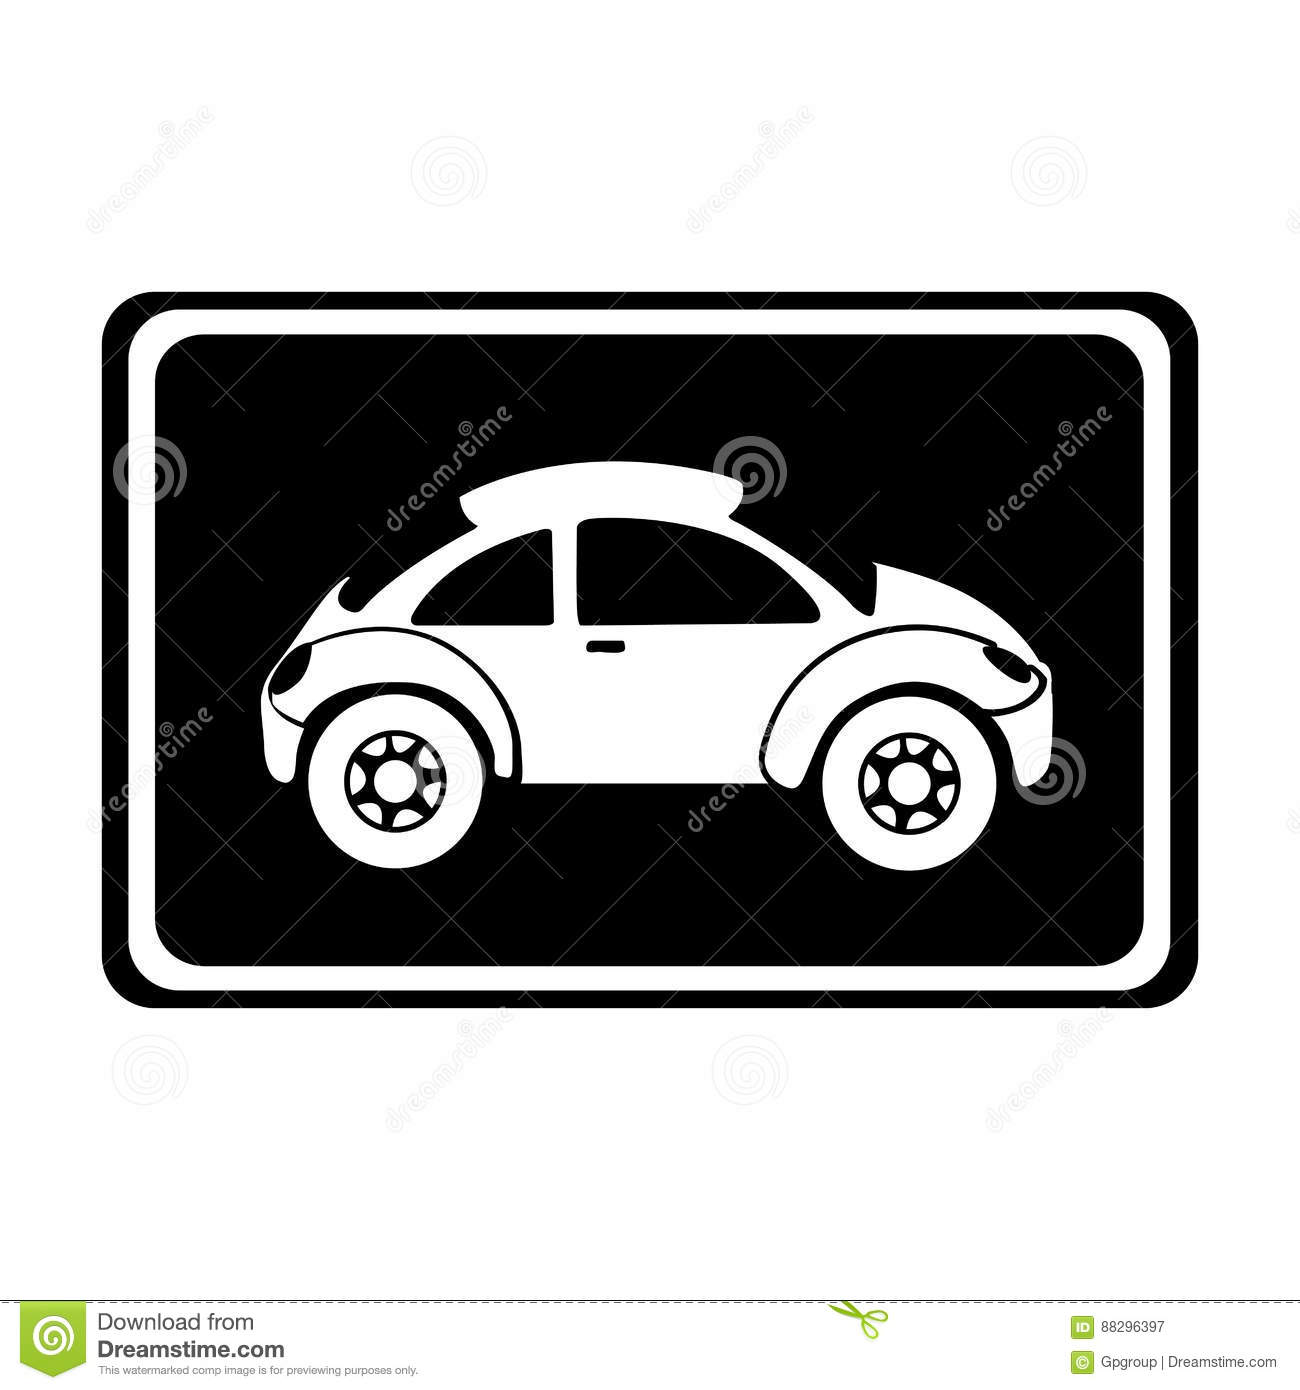 Monochrome Silhouette With Sports Car In Square Frame Stock ...